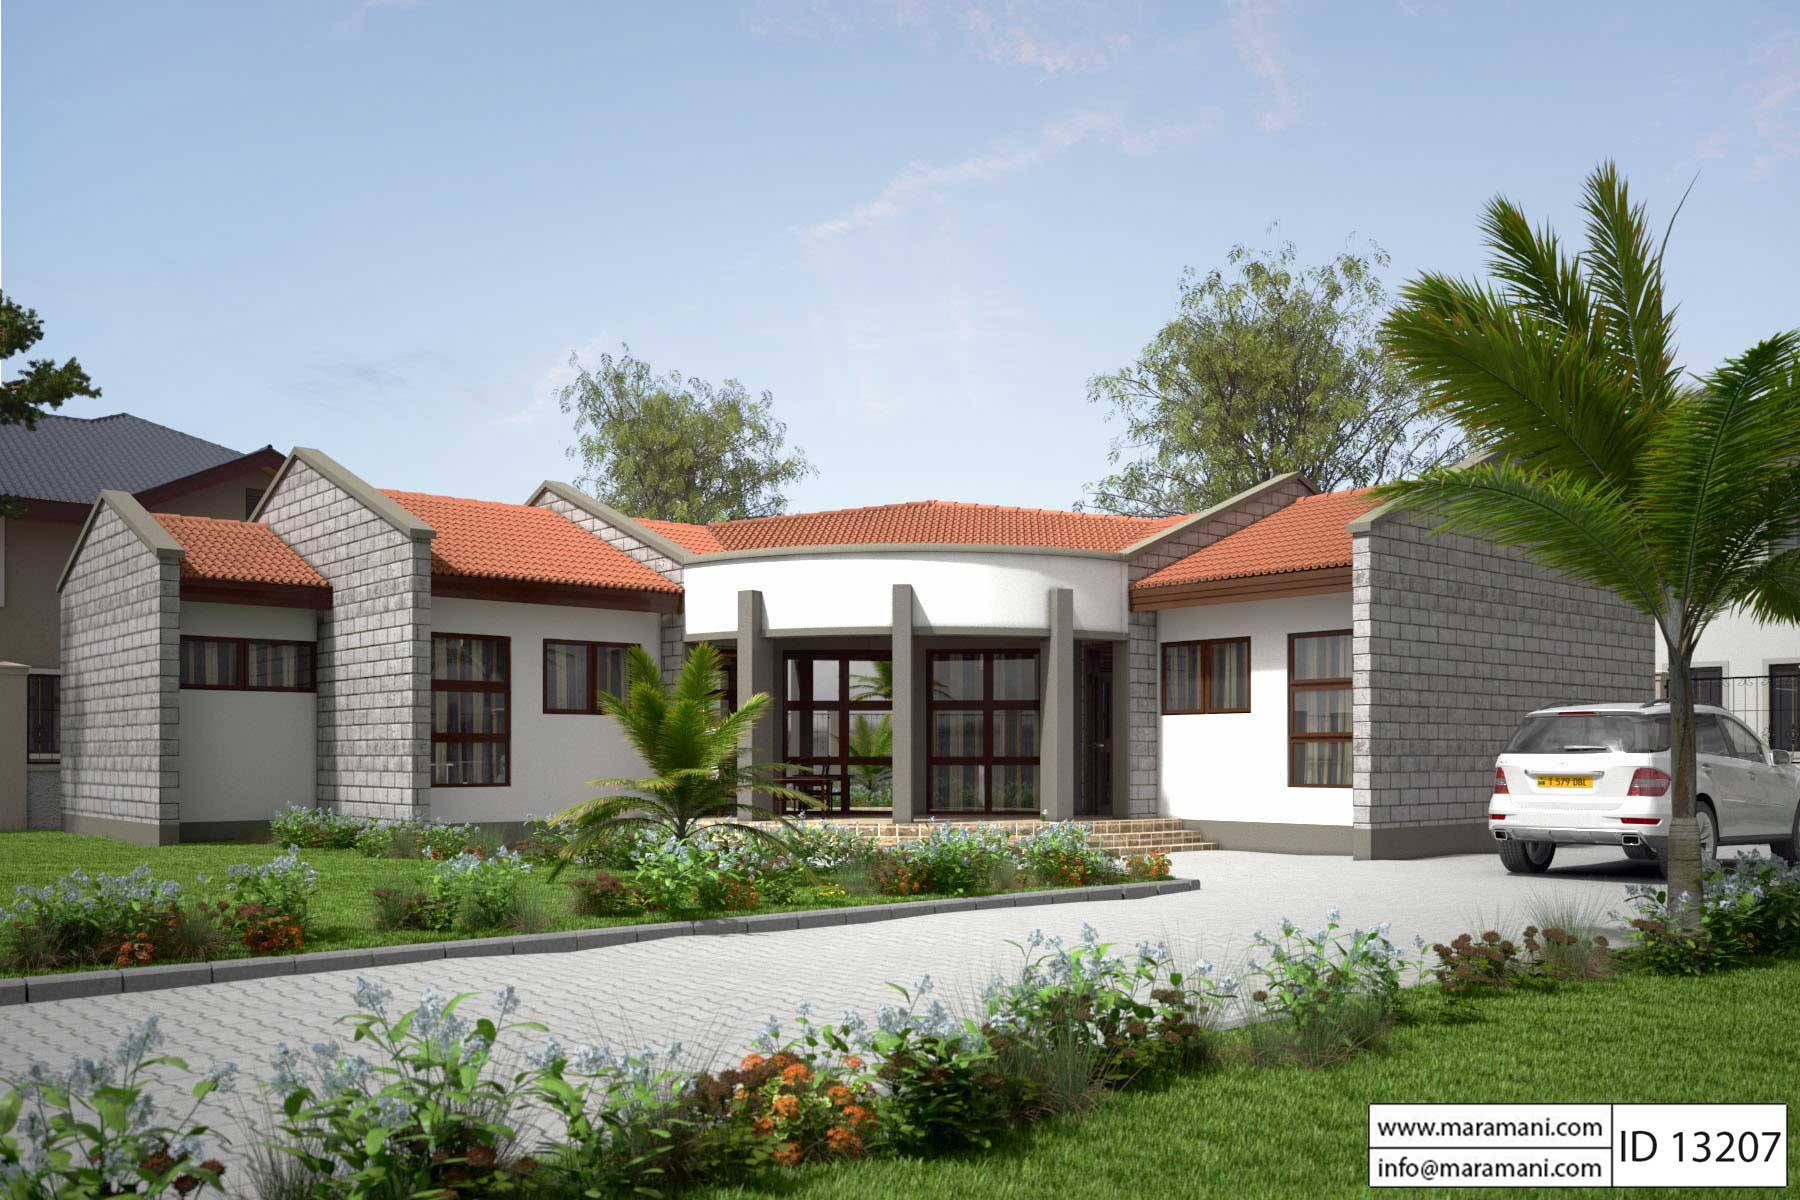 Low budget modern 3 bedroom house design id 13207 - Single story 4 bedroom modern house plans ...